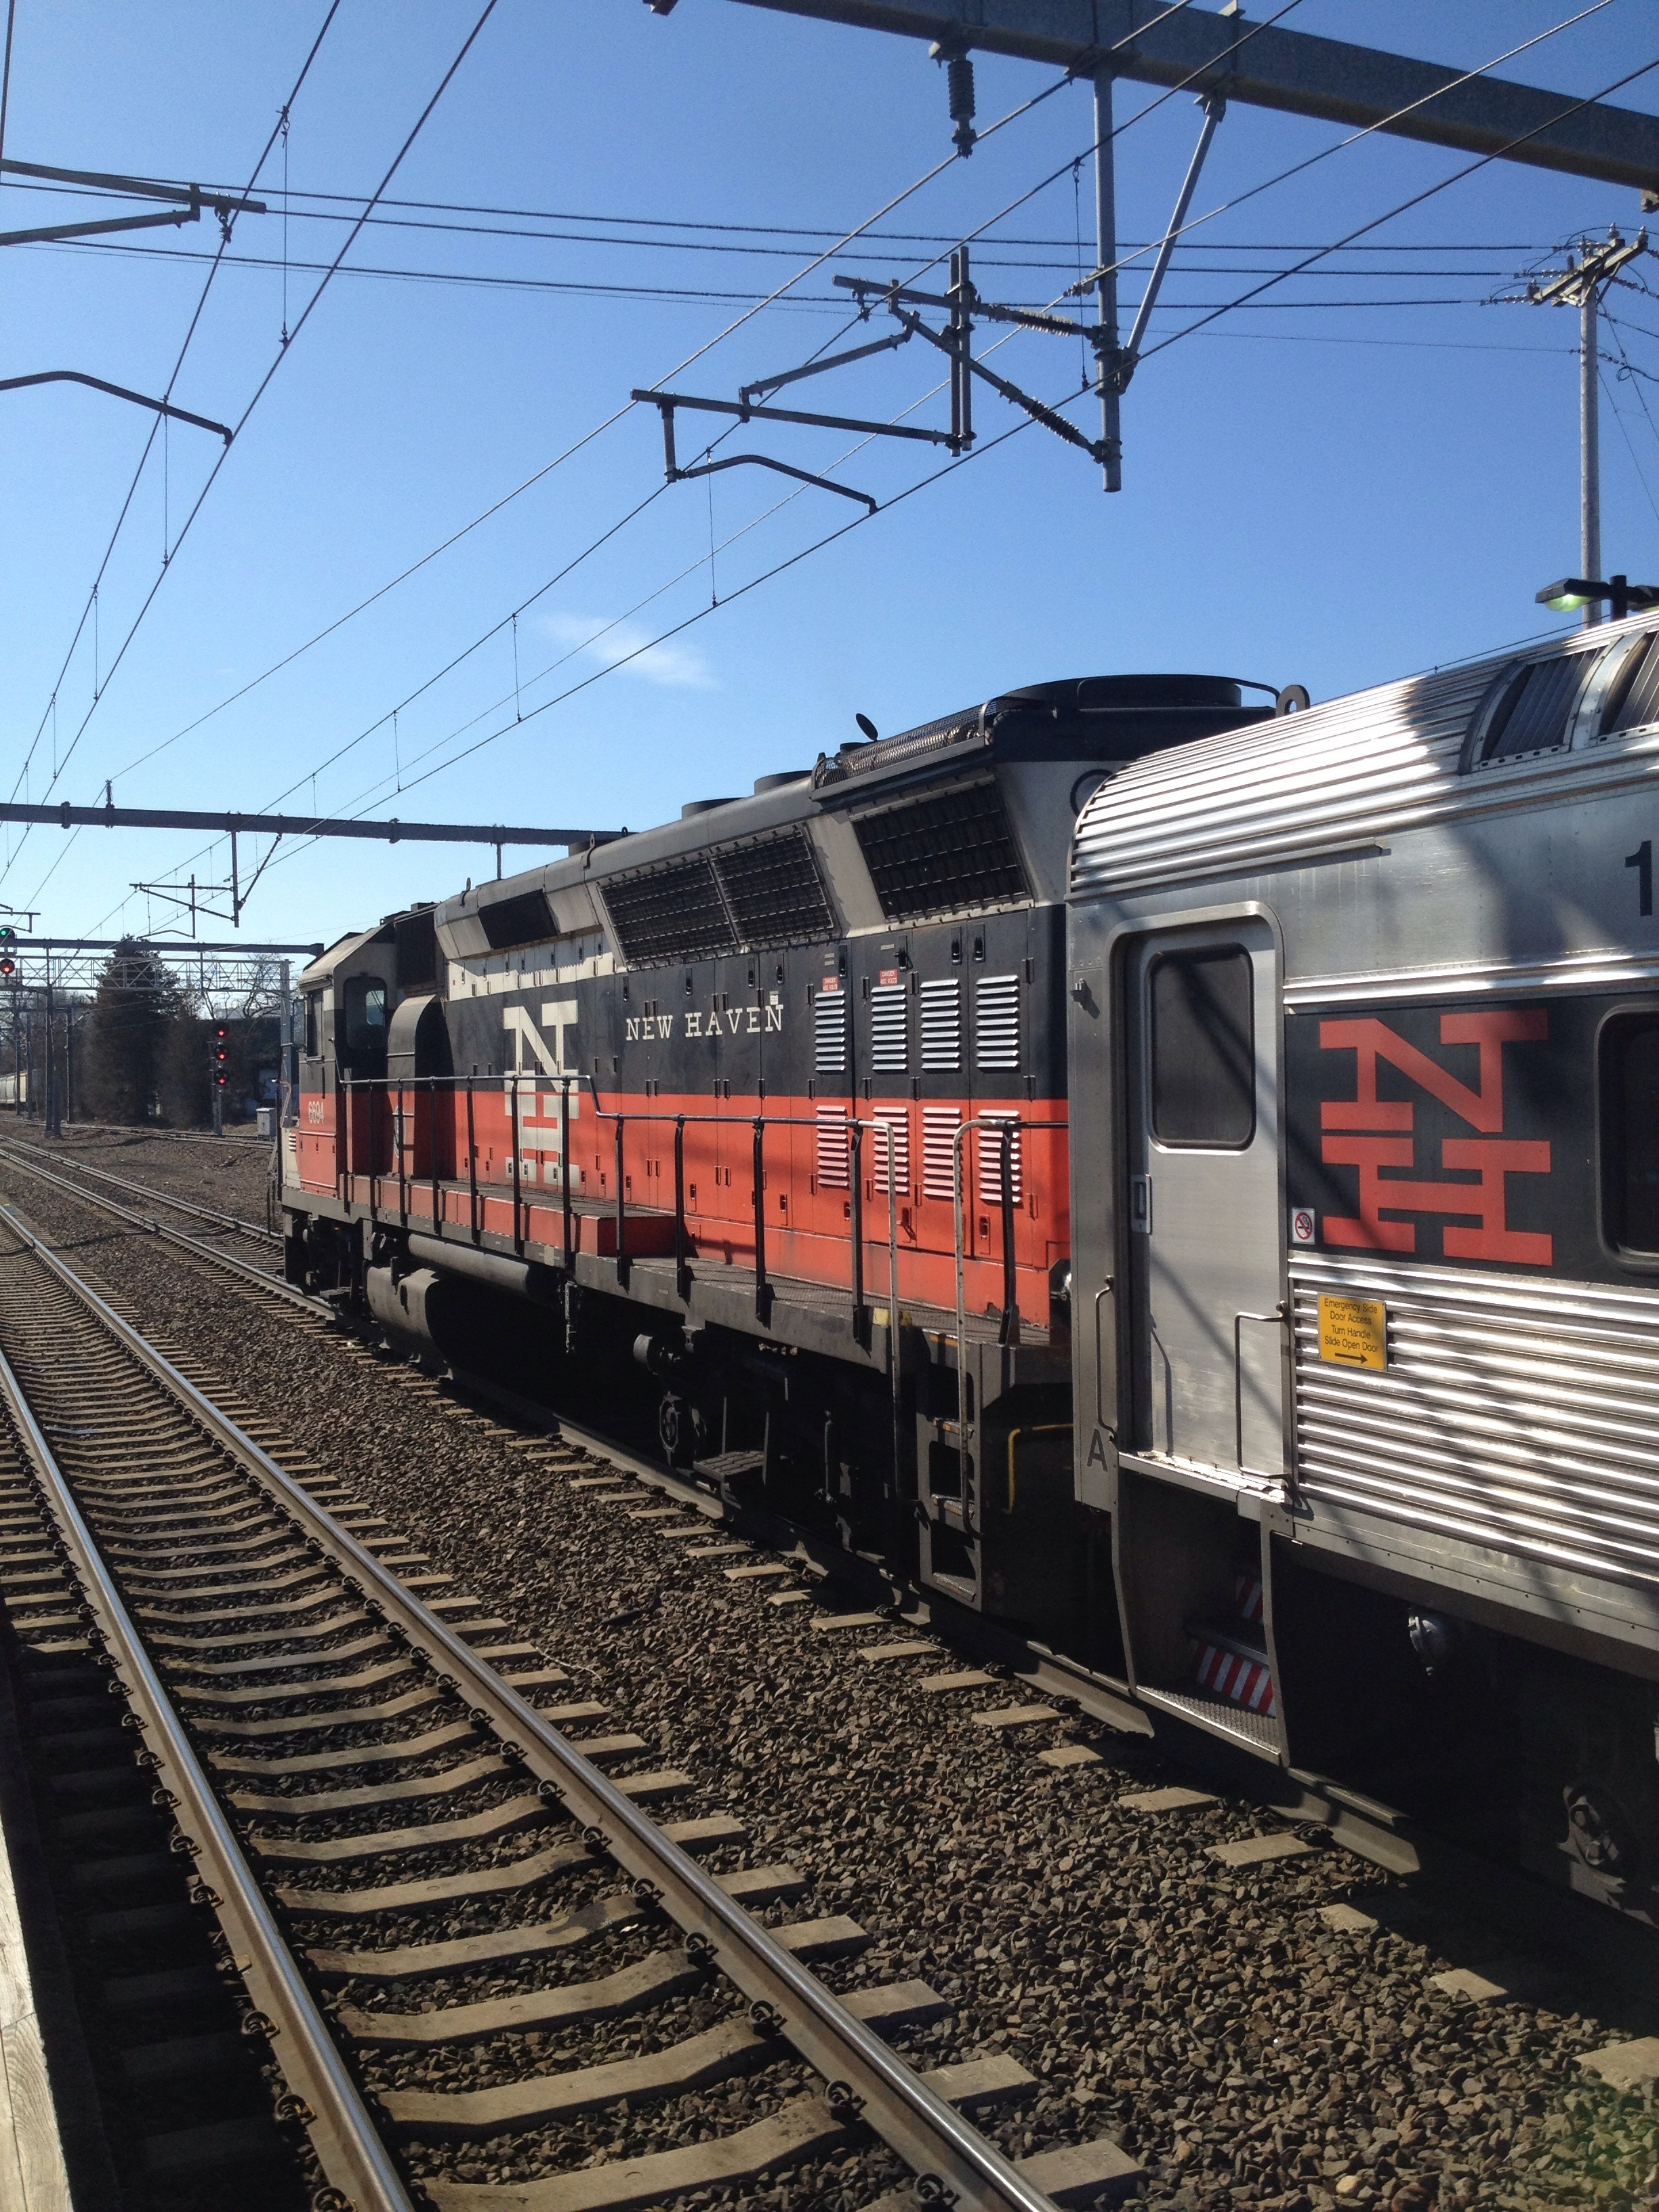 file shore line east train at old saybrook jpg wikimedia commons